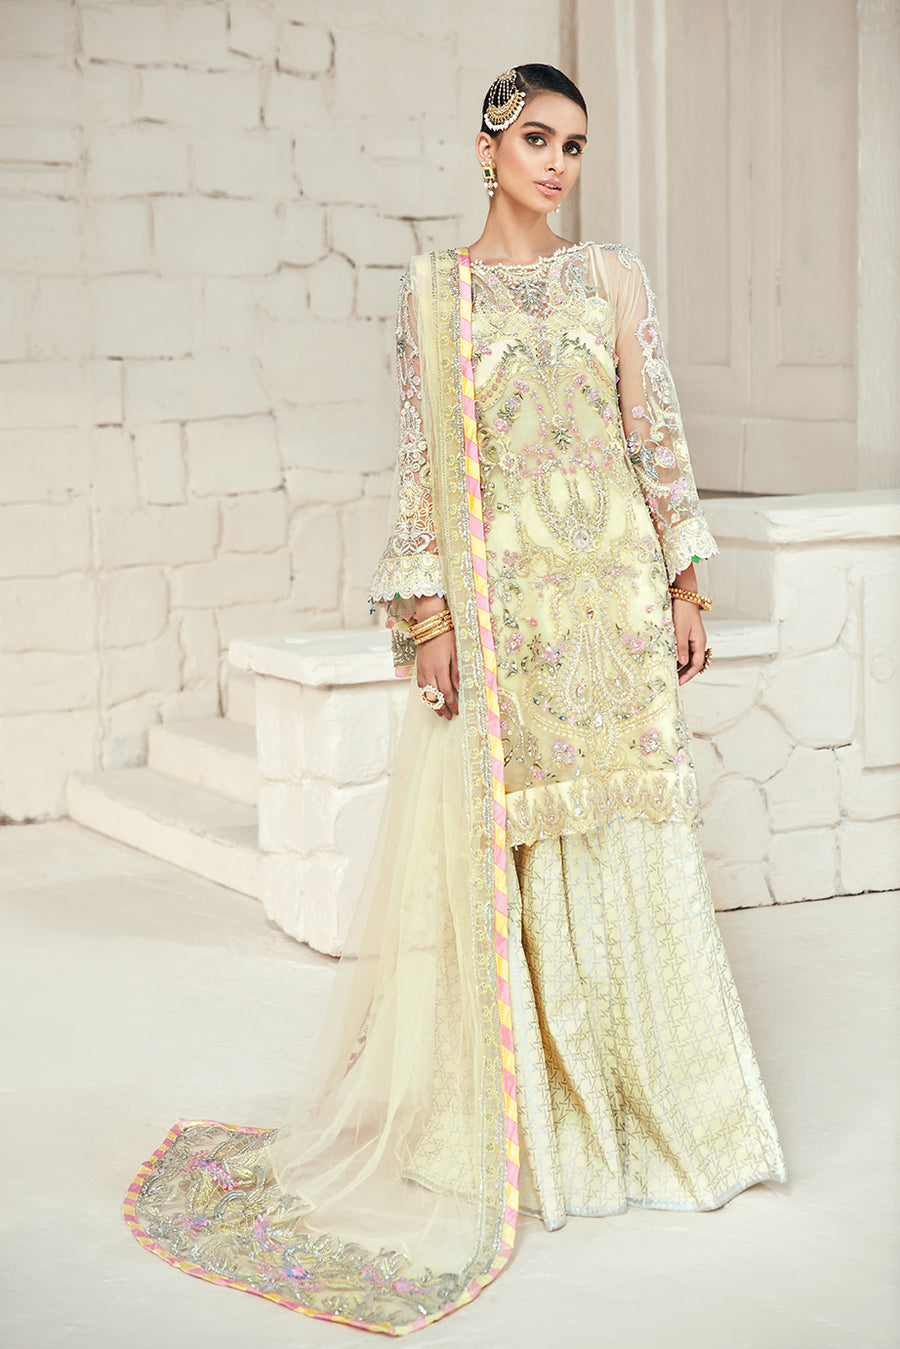 Maryam Hussain Sunscape Marwa Luxury Formals